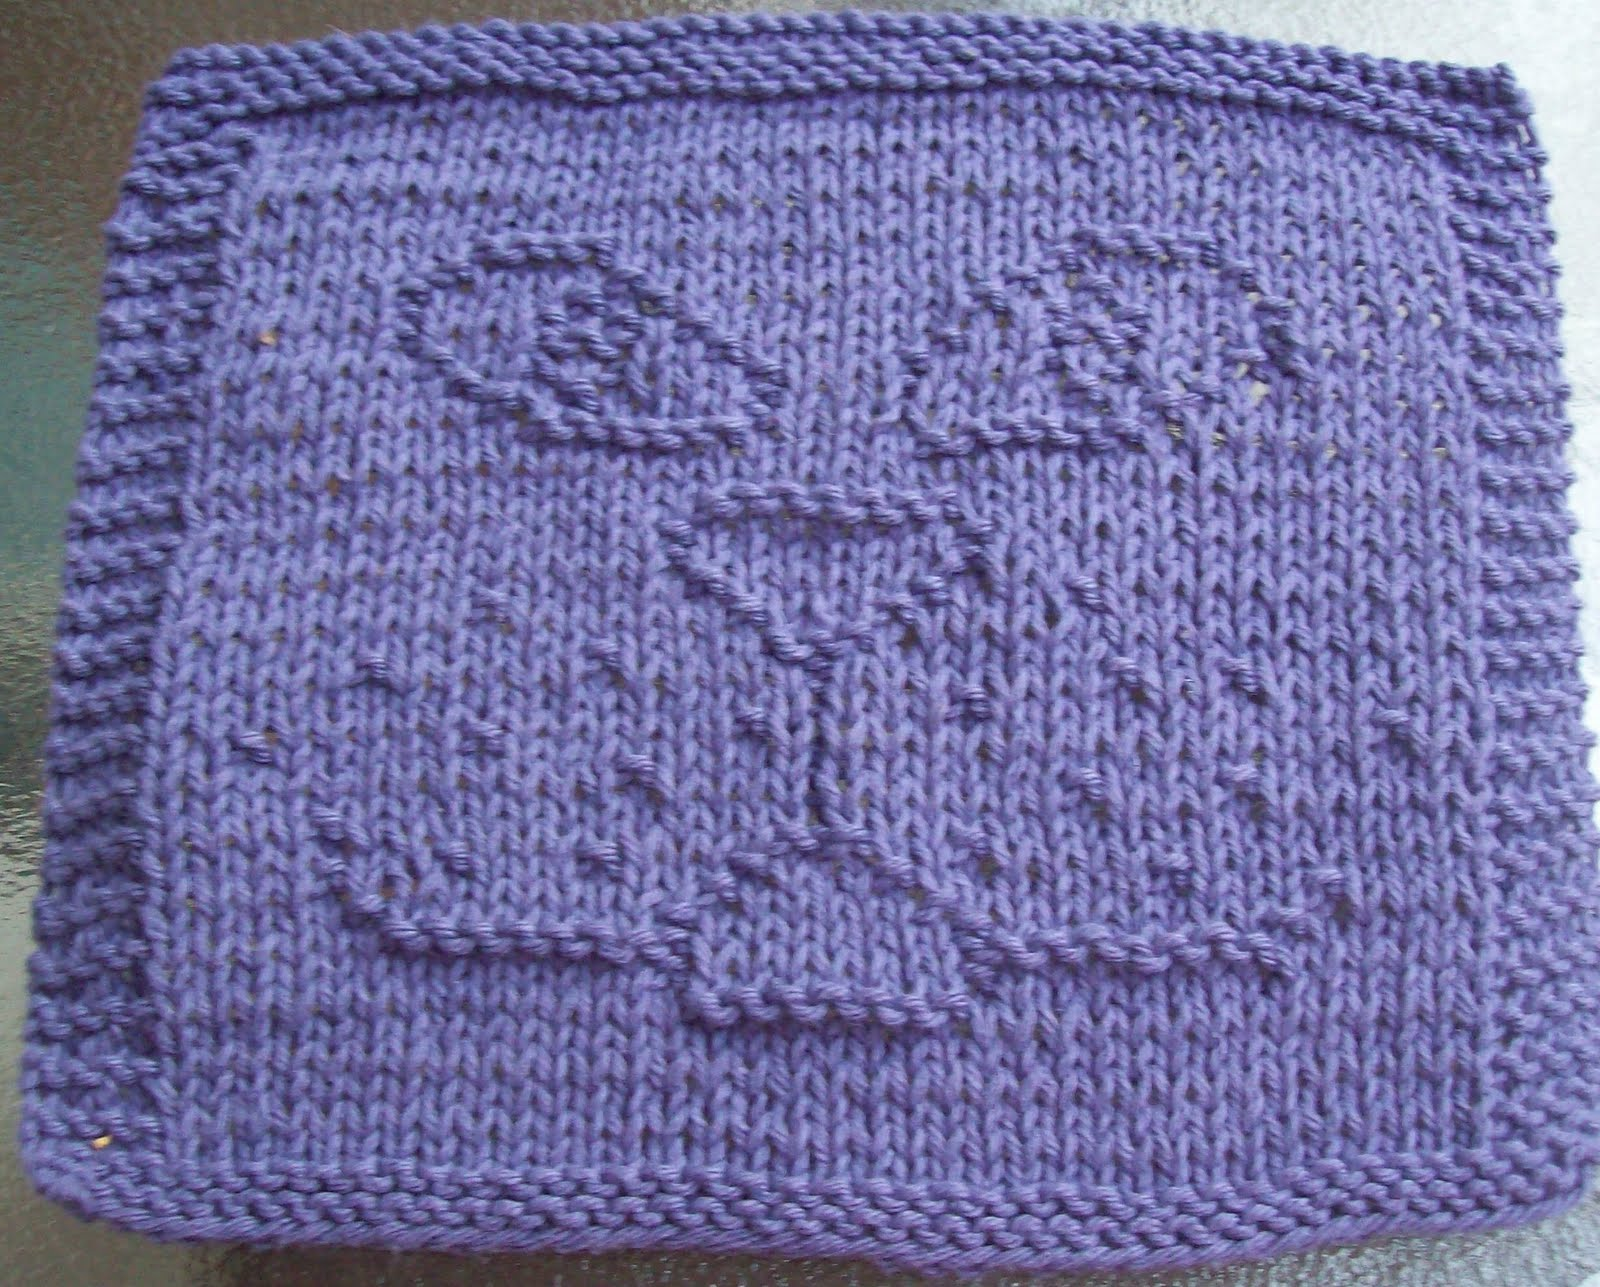 DigKnitty Designs: Cat Face Knit Dishcloth Pattern